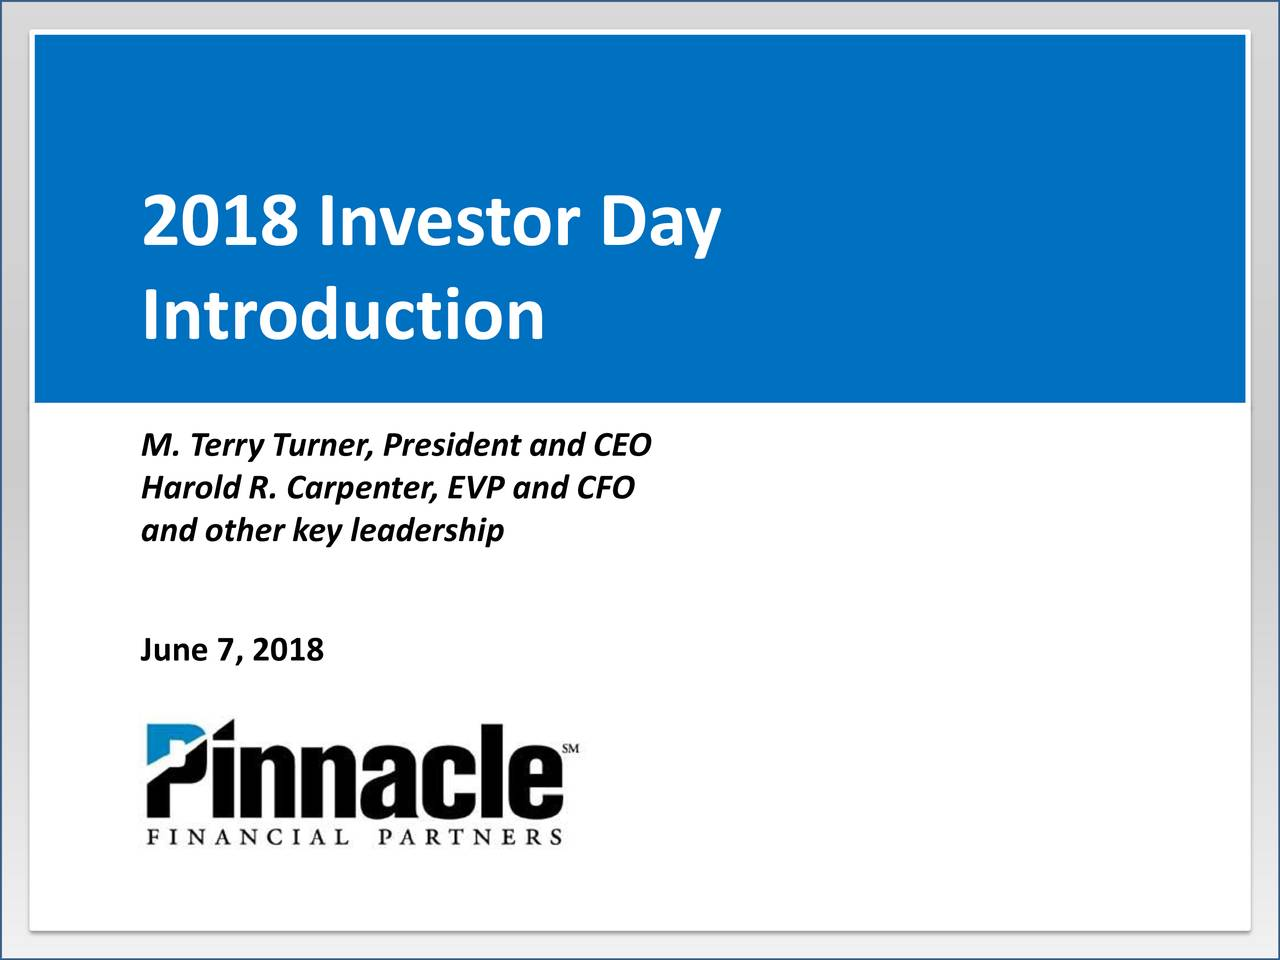 Introduction M. Terry Turner, President and CEO Harold R. Carpenter, EVP and CFO and other key leadership June 7, 2018